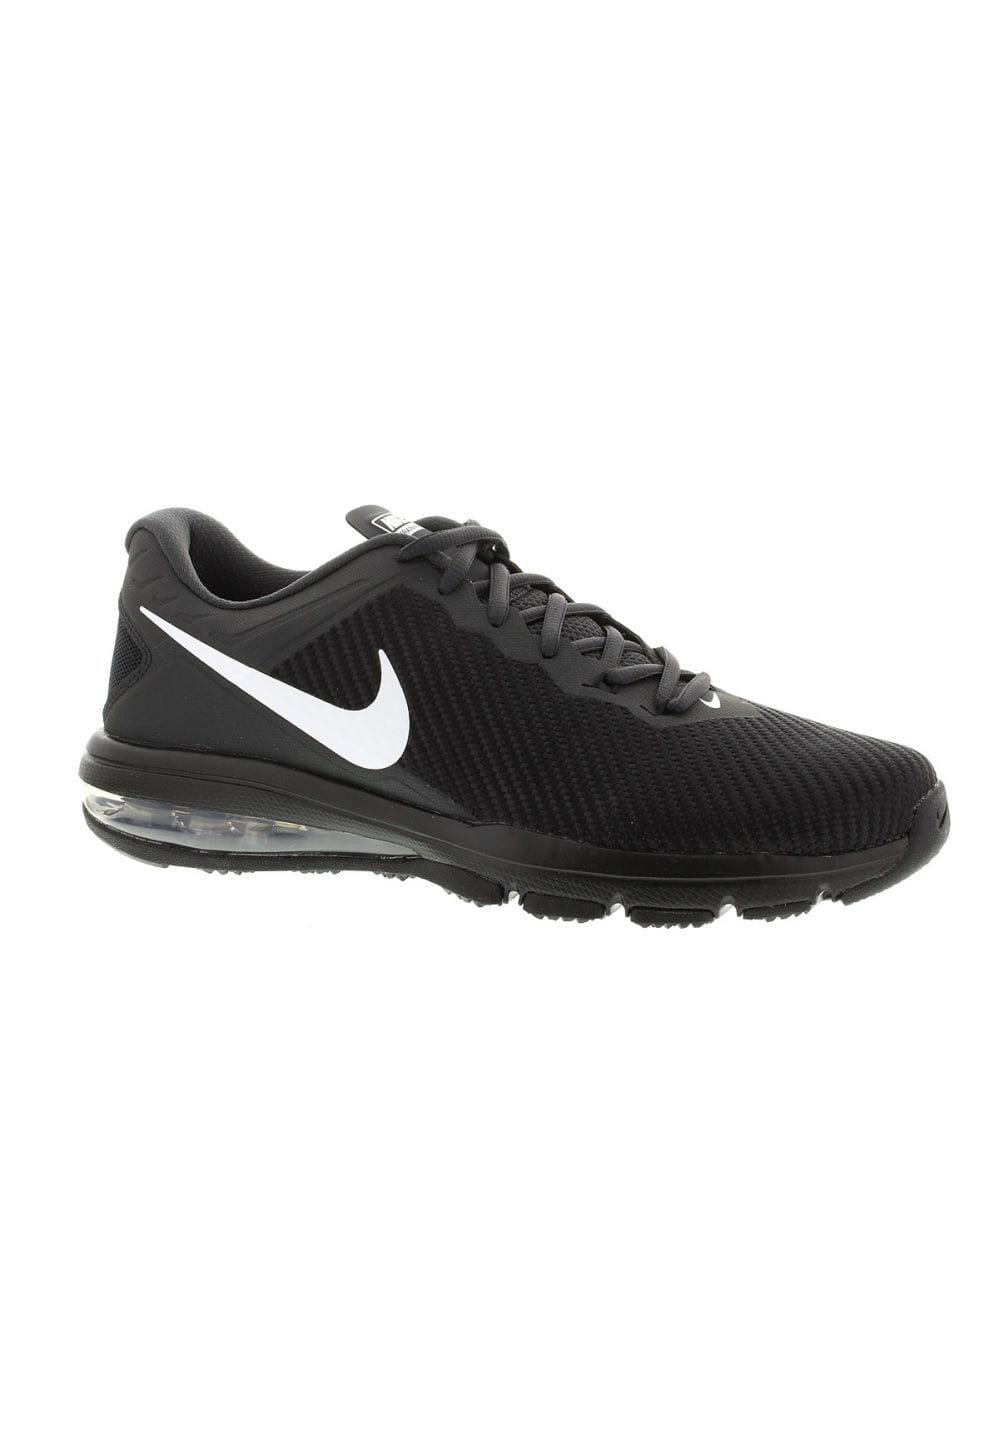 online retailer ffb88 97c92 Nike Air Max Full Ride TR 1.5 - Fitness shoes for Men - Blac